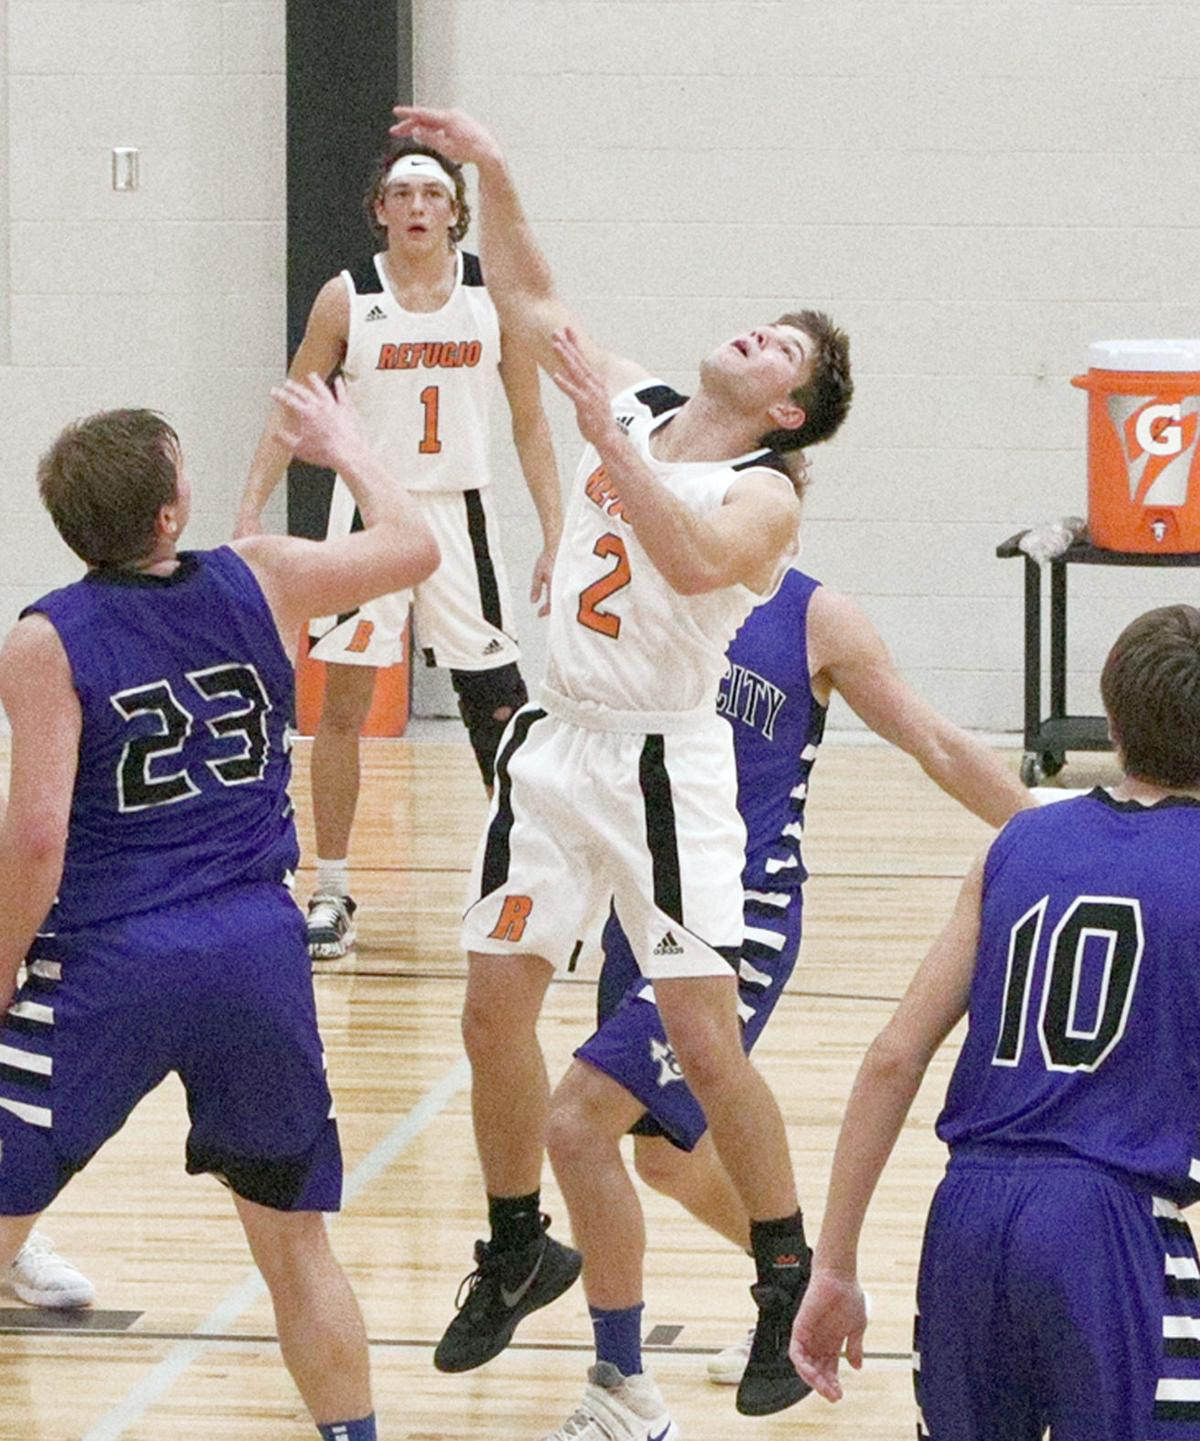 Bobcats out-hoop the Beavers